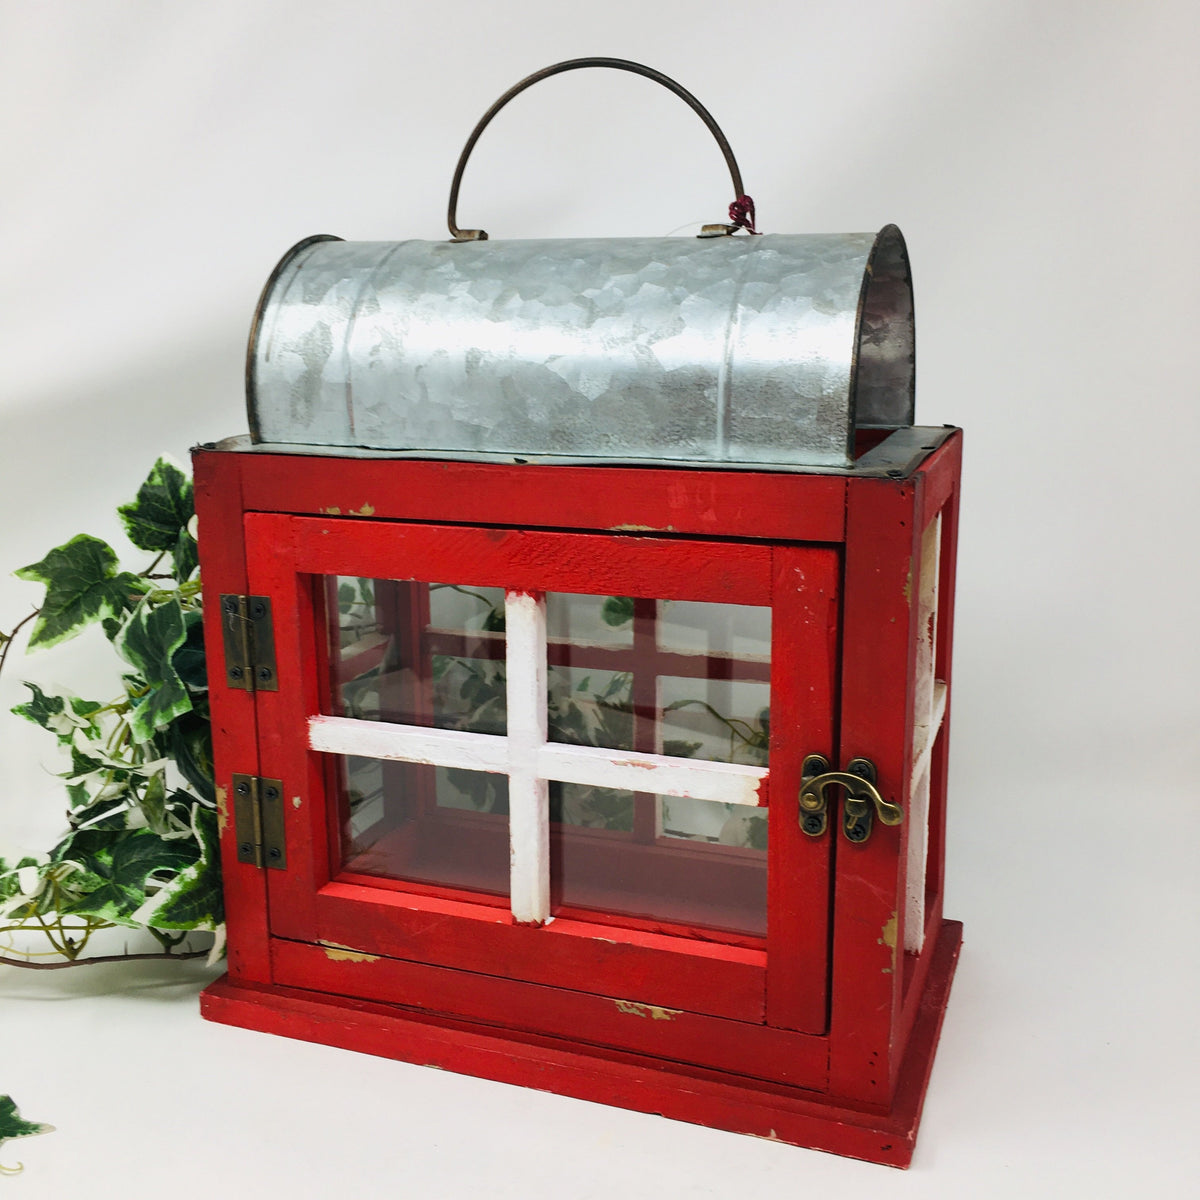 Galvanized/Wood Red Rectangular Lantern